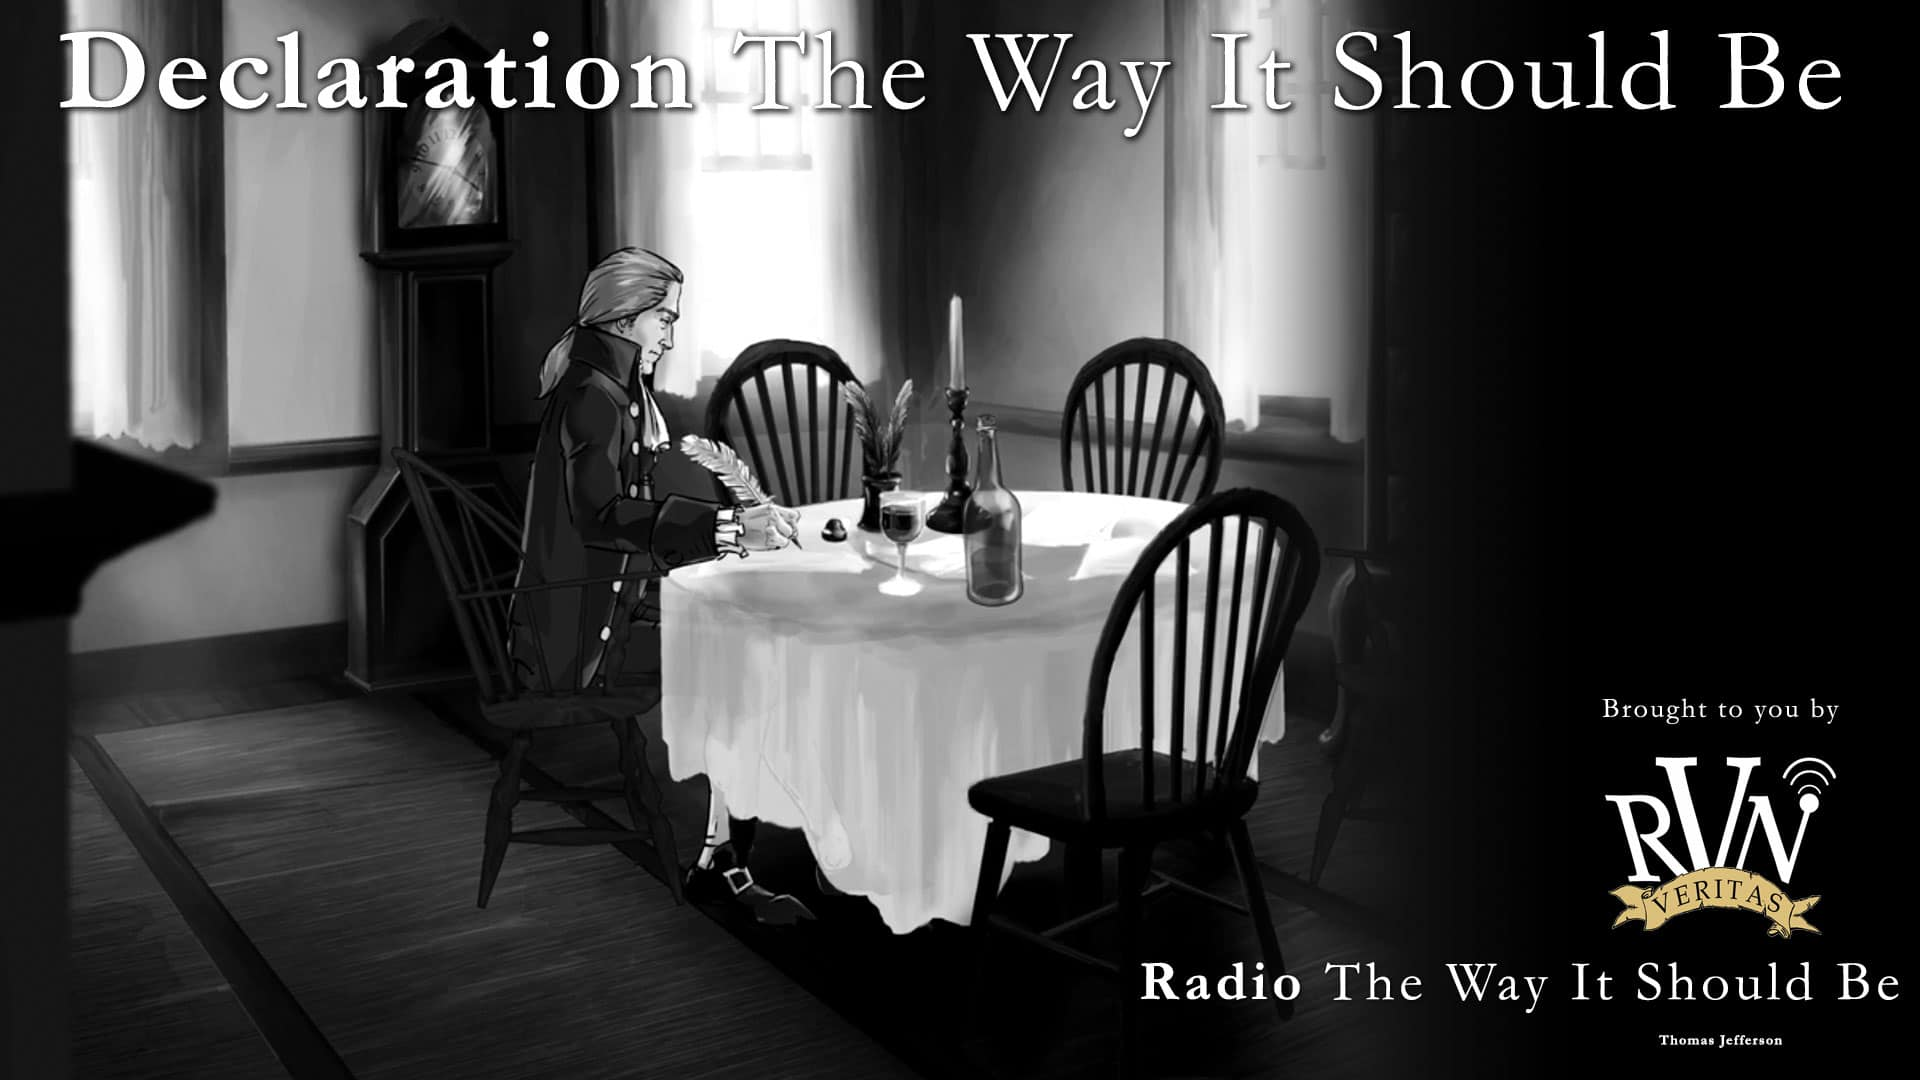 Declaration The Way It Should Be From The Radio The Way It Should Be Campaign